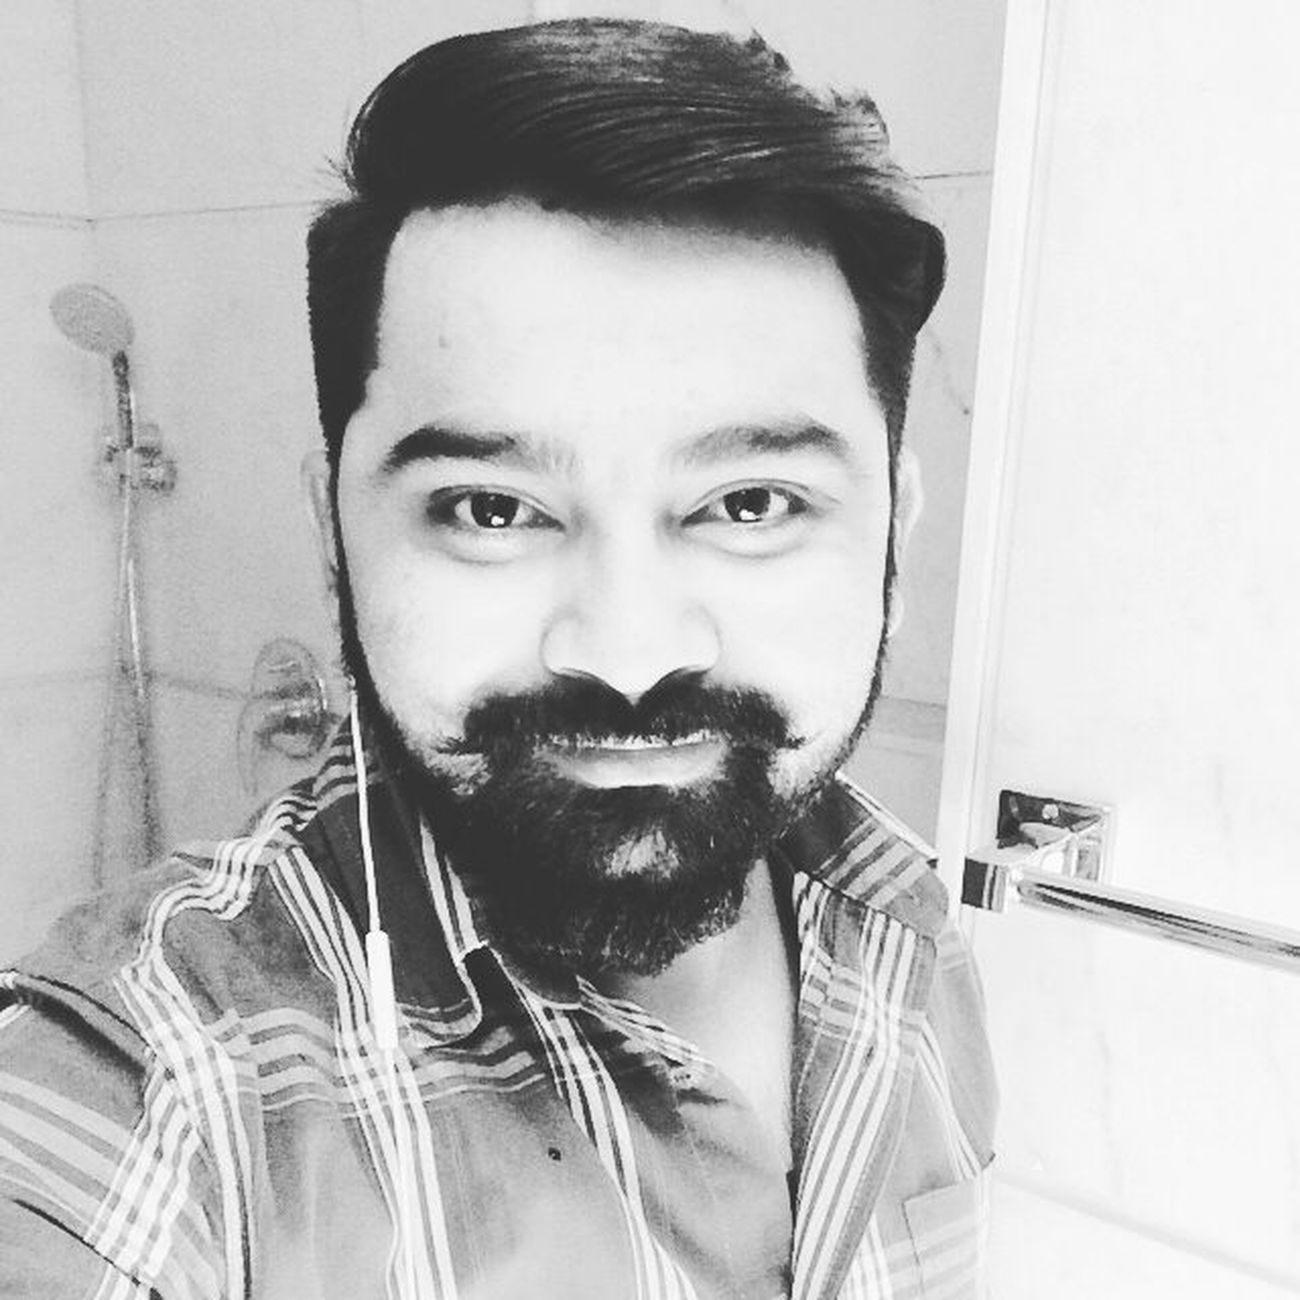 Beard Love Mustacheman New Haircut Delhi Iphone5s Selfieee Instapic